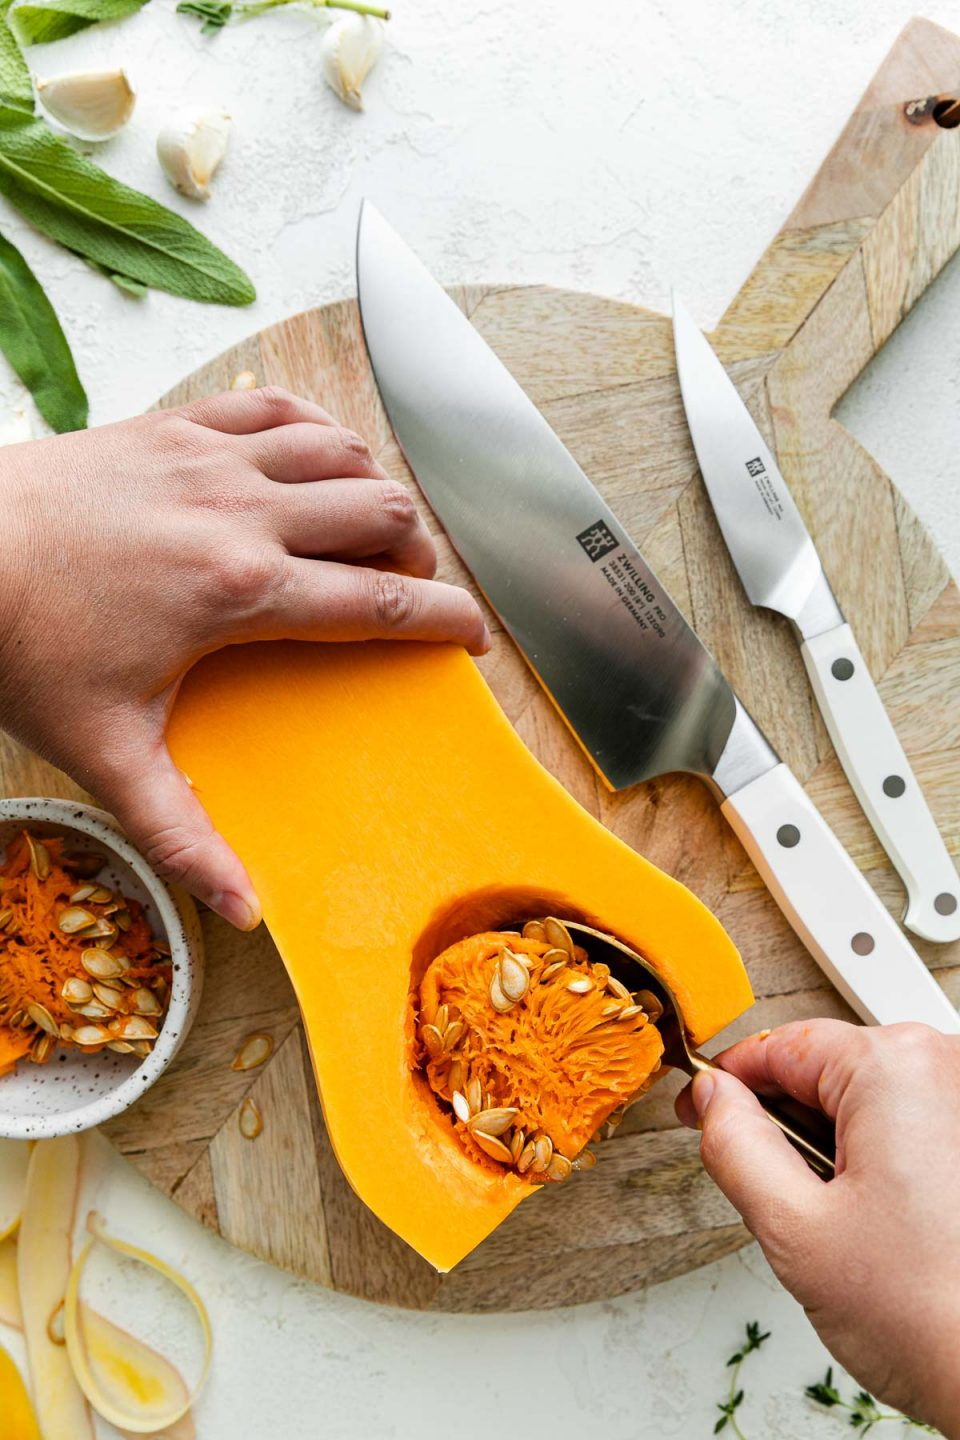 Half of a peeled butternut squash rests on top of a round wooden cutting board alongside a pair of Zwilling Pro Le Blanc Knives. A woman's hand holds the top portion of the butternut squash, while holding a spoon in the other hand using it to scoop out the butternut squash seeds. A small speckled ceramic bowl rests on the cutting board as well to collect the discarded butternut squash seeds. The cutting board sits atop a white textured surface while butternut squash peelings, fresh herbs, & cloves of garlic surround the cutting board.